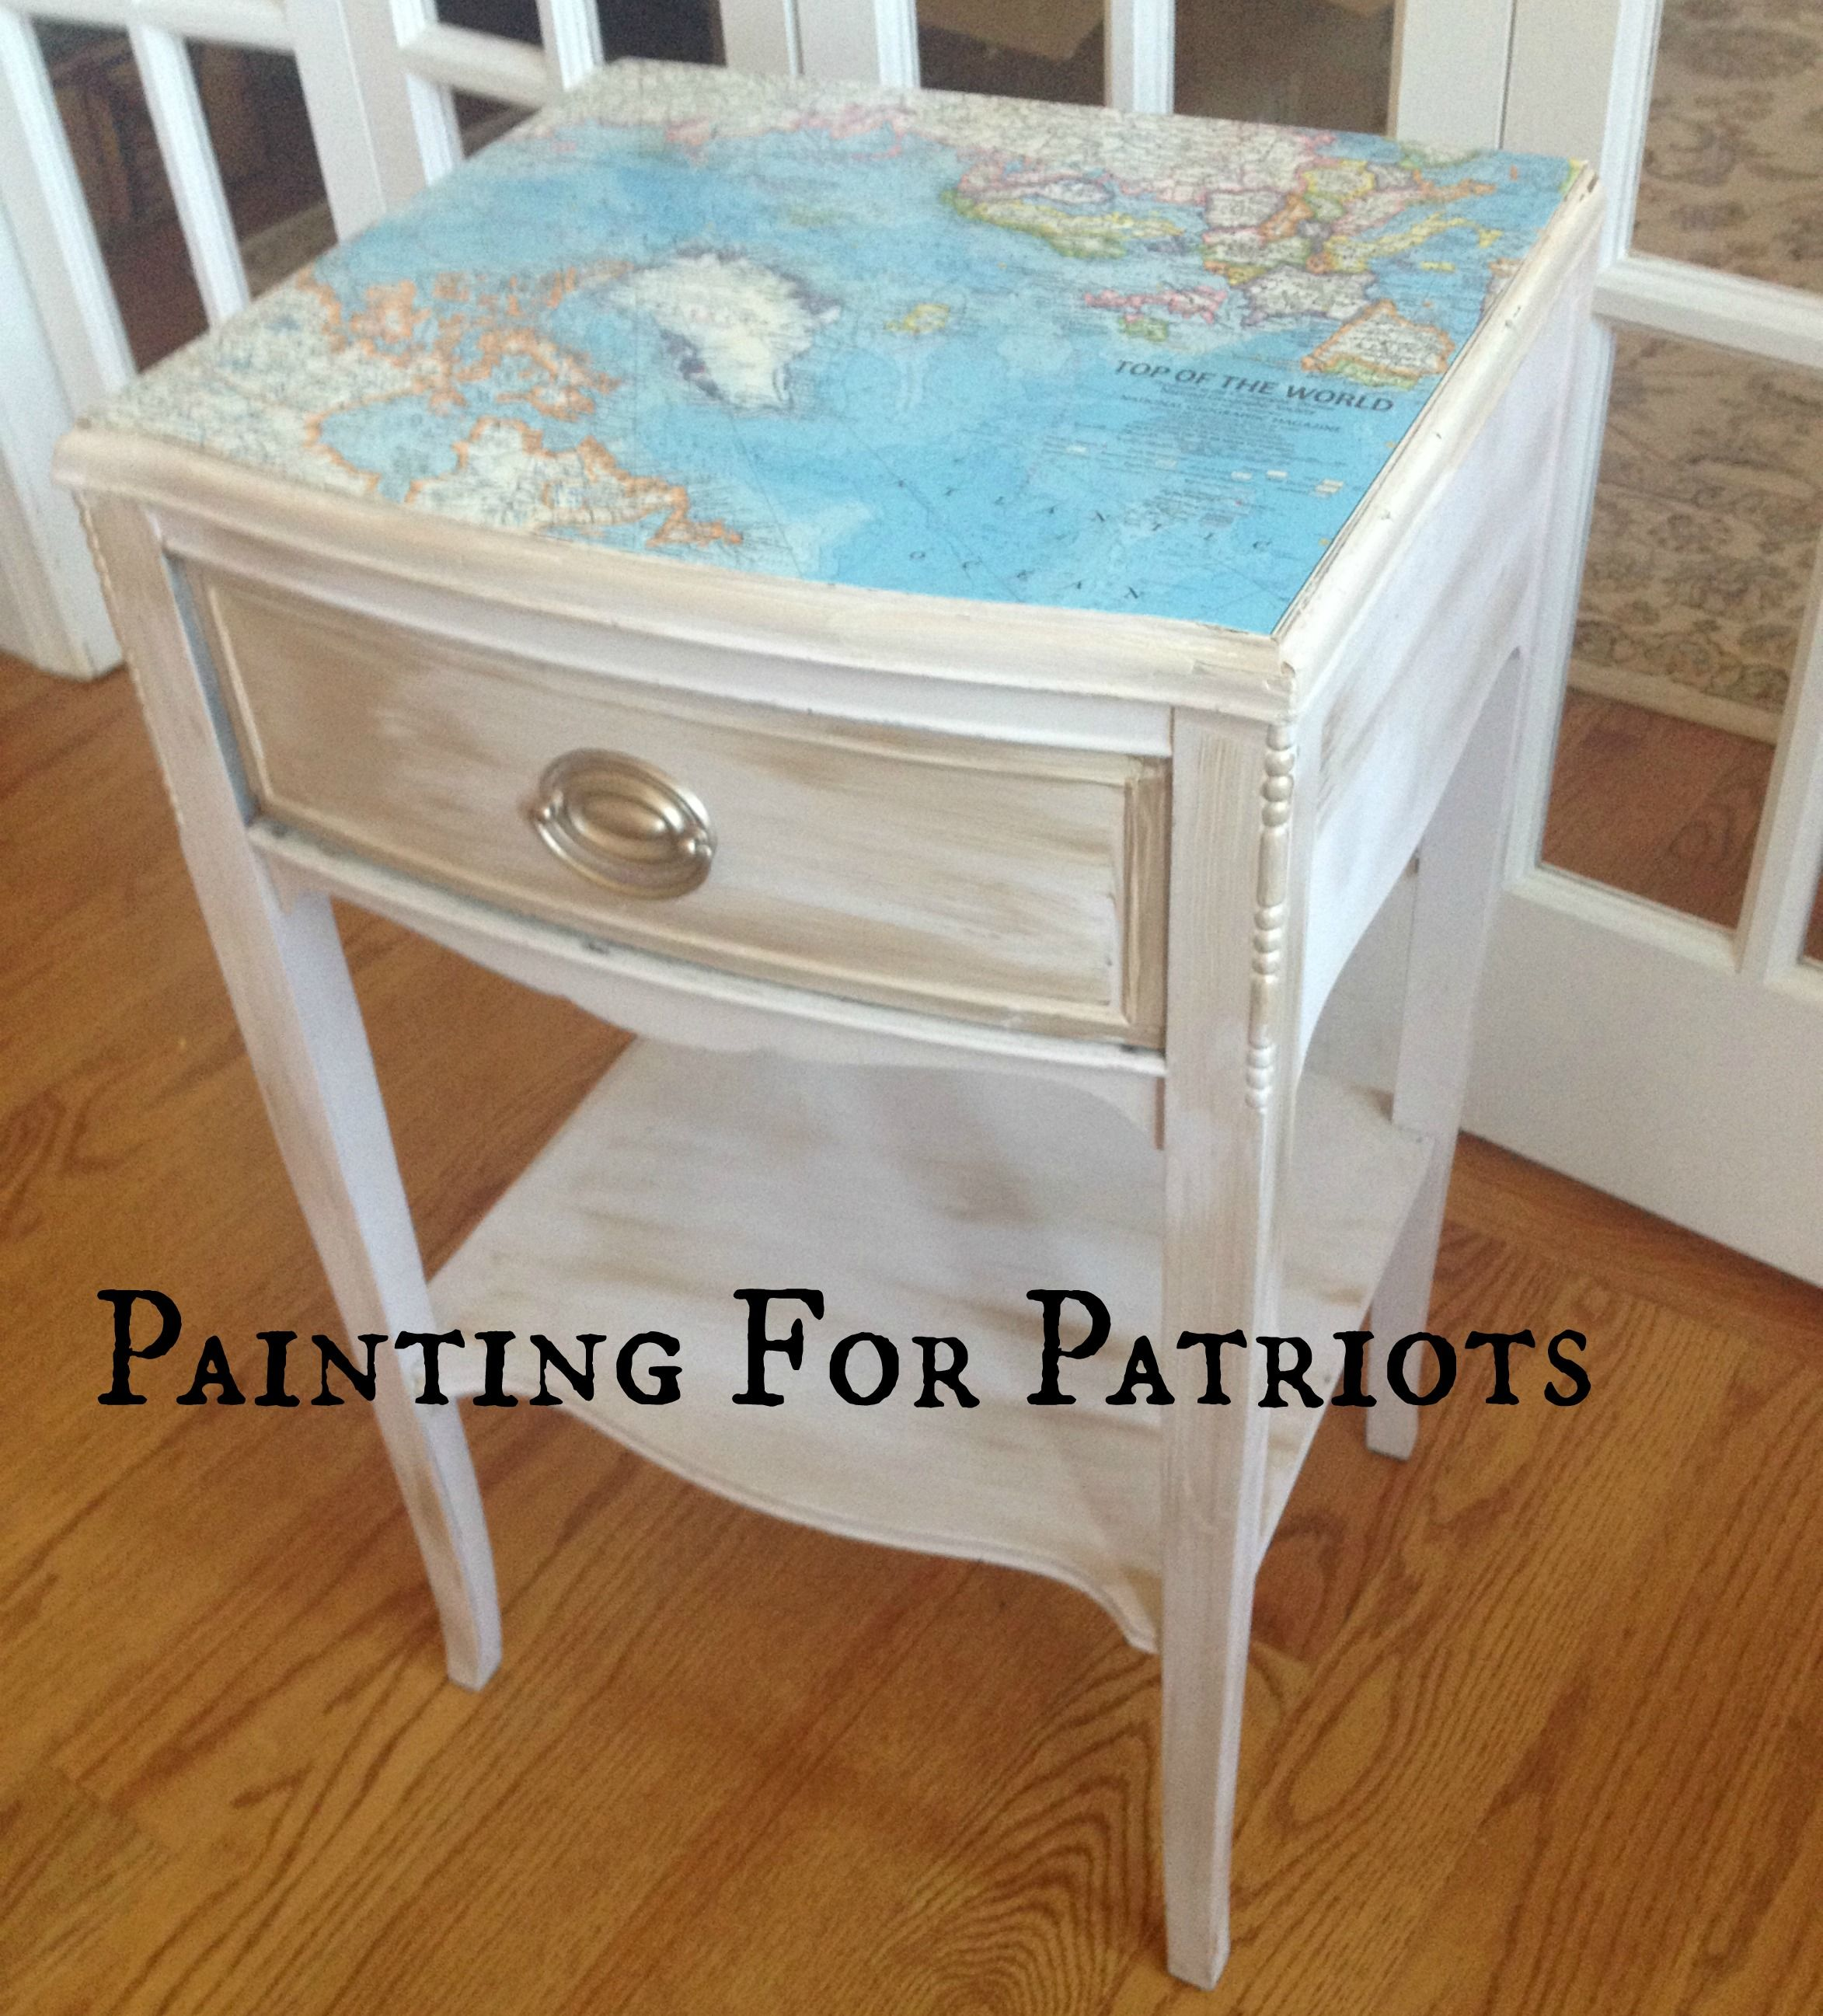 Nightstand With Vintage Top Of The World Map Who Wouldn T Want To Wake Up To That Sold To Benefit The Semper Fi Fund Vintage Nautical Vintage Maps Repurposed